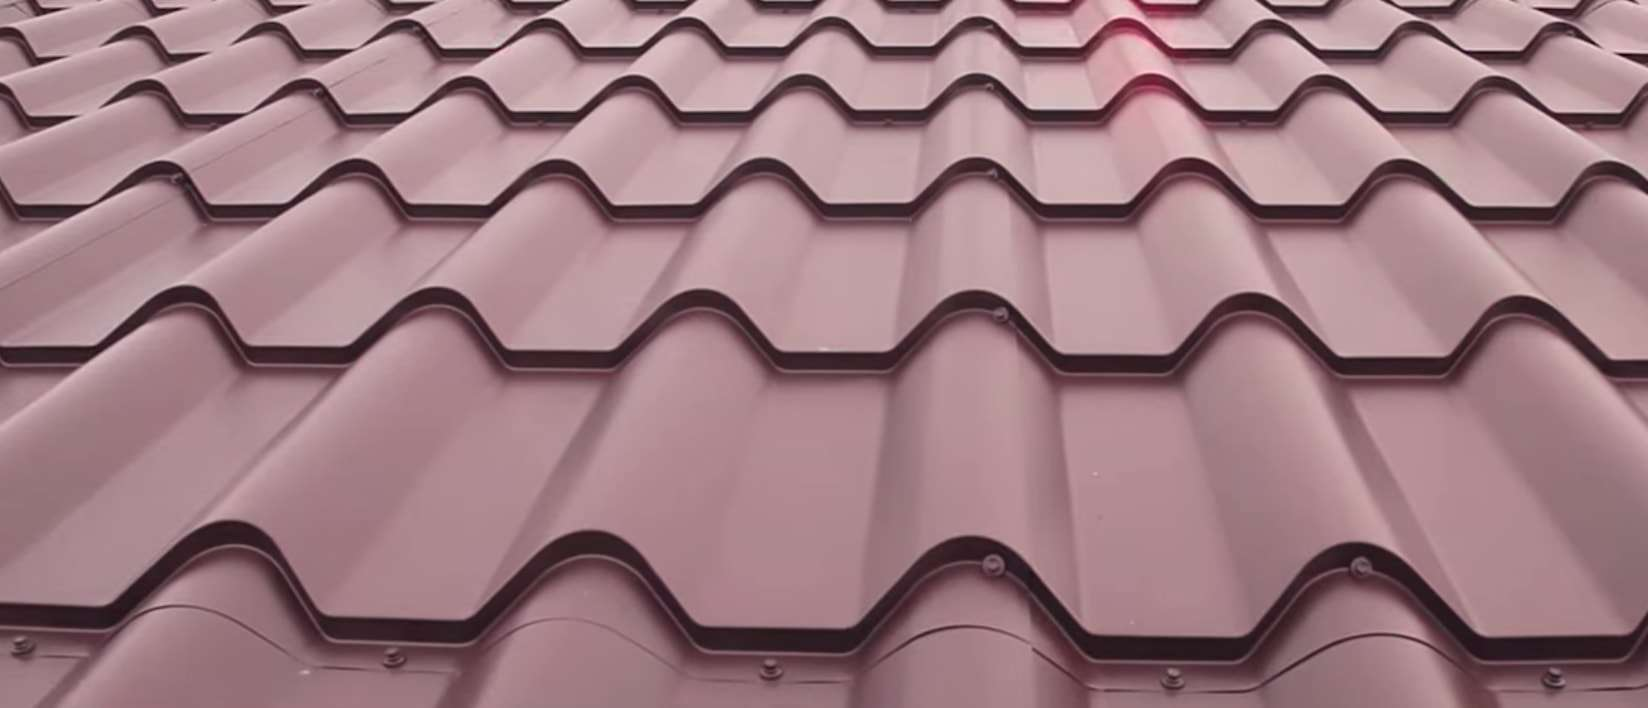 an up close photo of red metal roofs